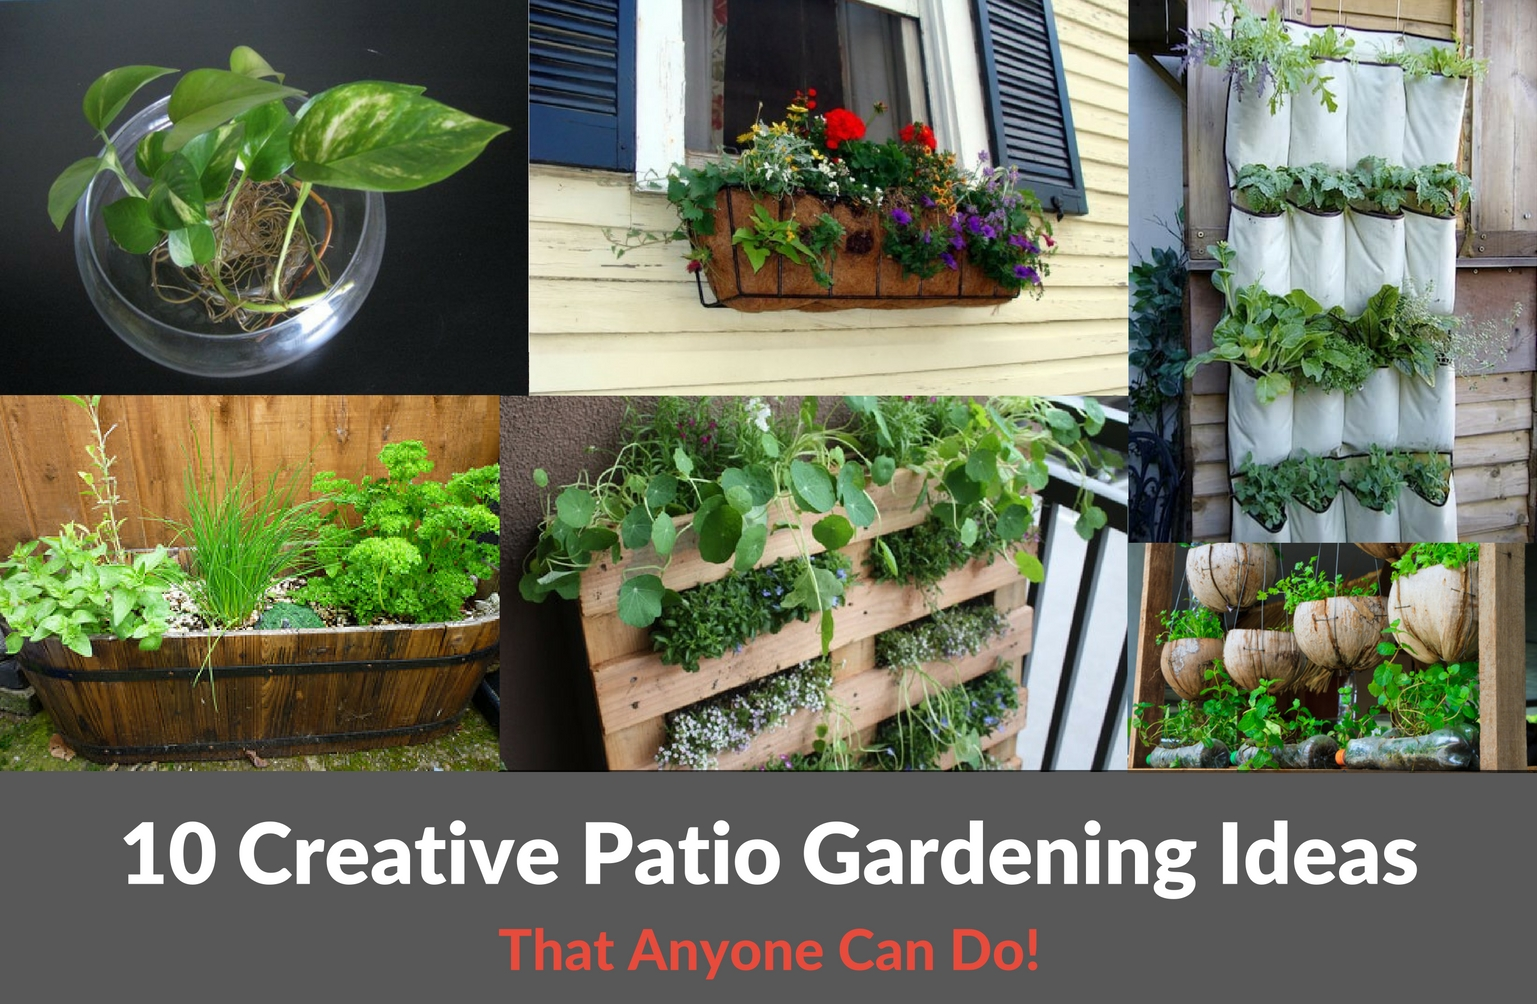 Patio gardening ideas garden inspiration for Patio inspiration ideas